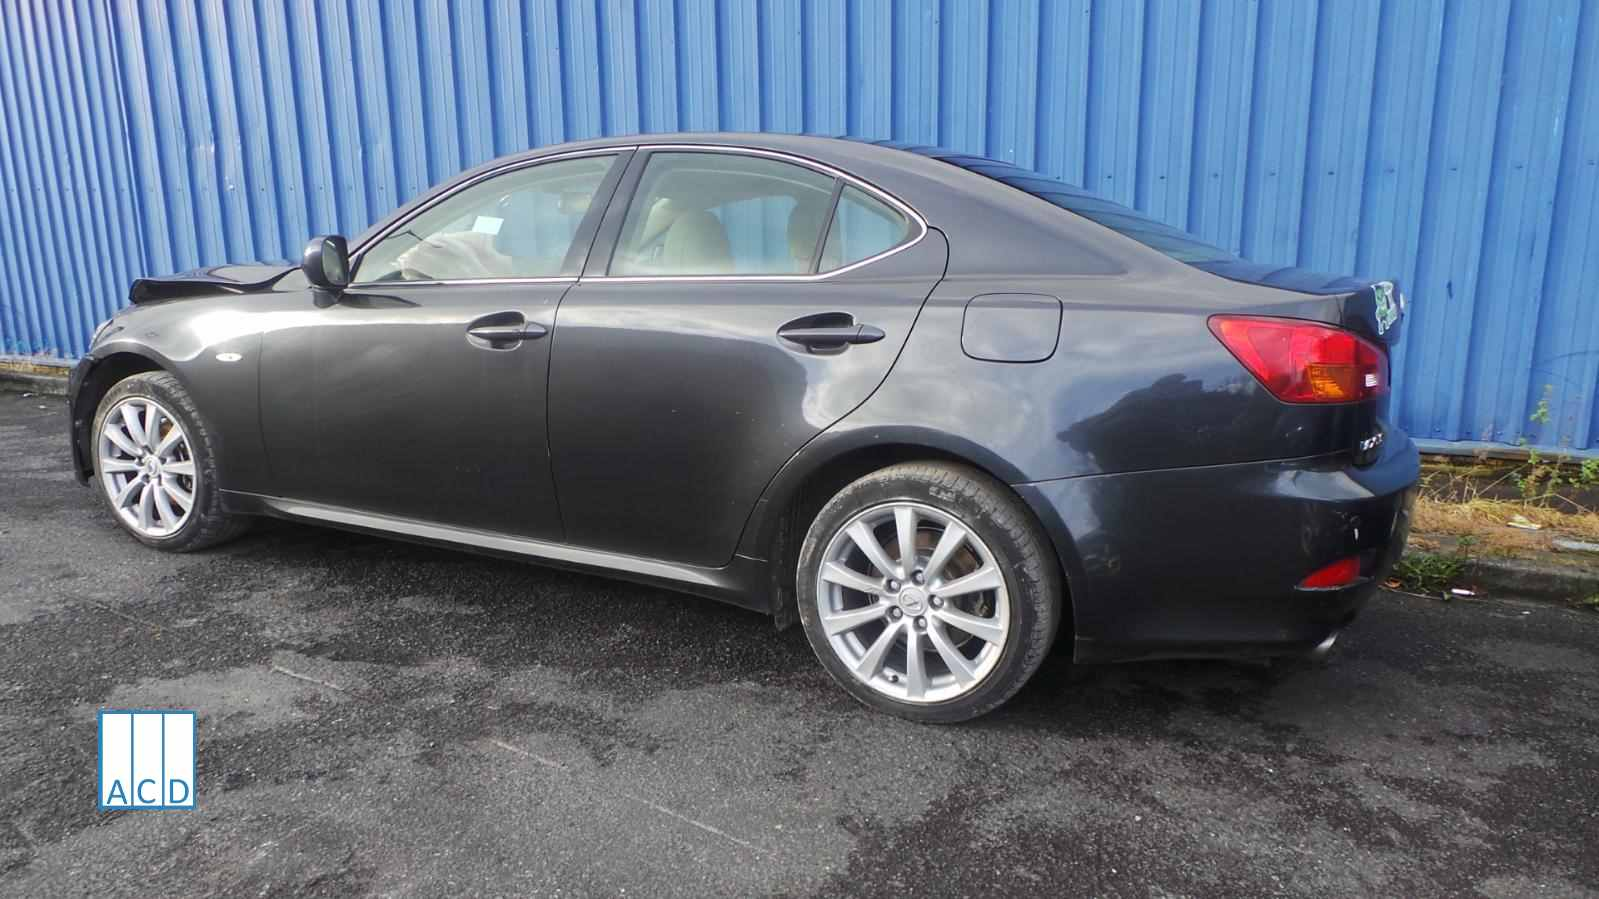 Lexus IS 250 SE 2.5L Petrol 6-Speed Automatic 2006